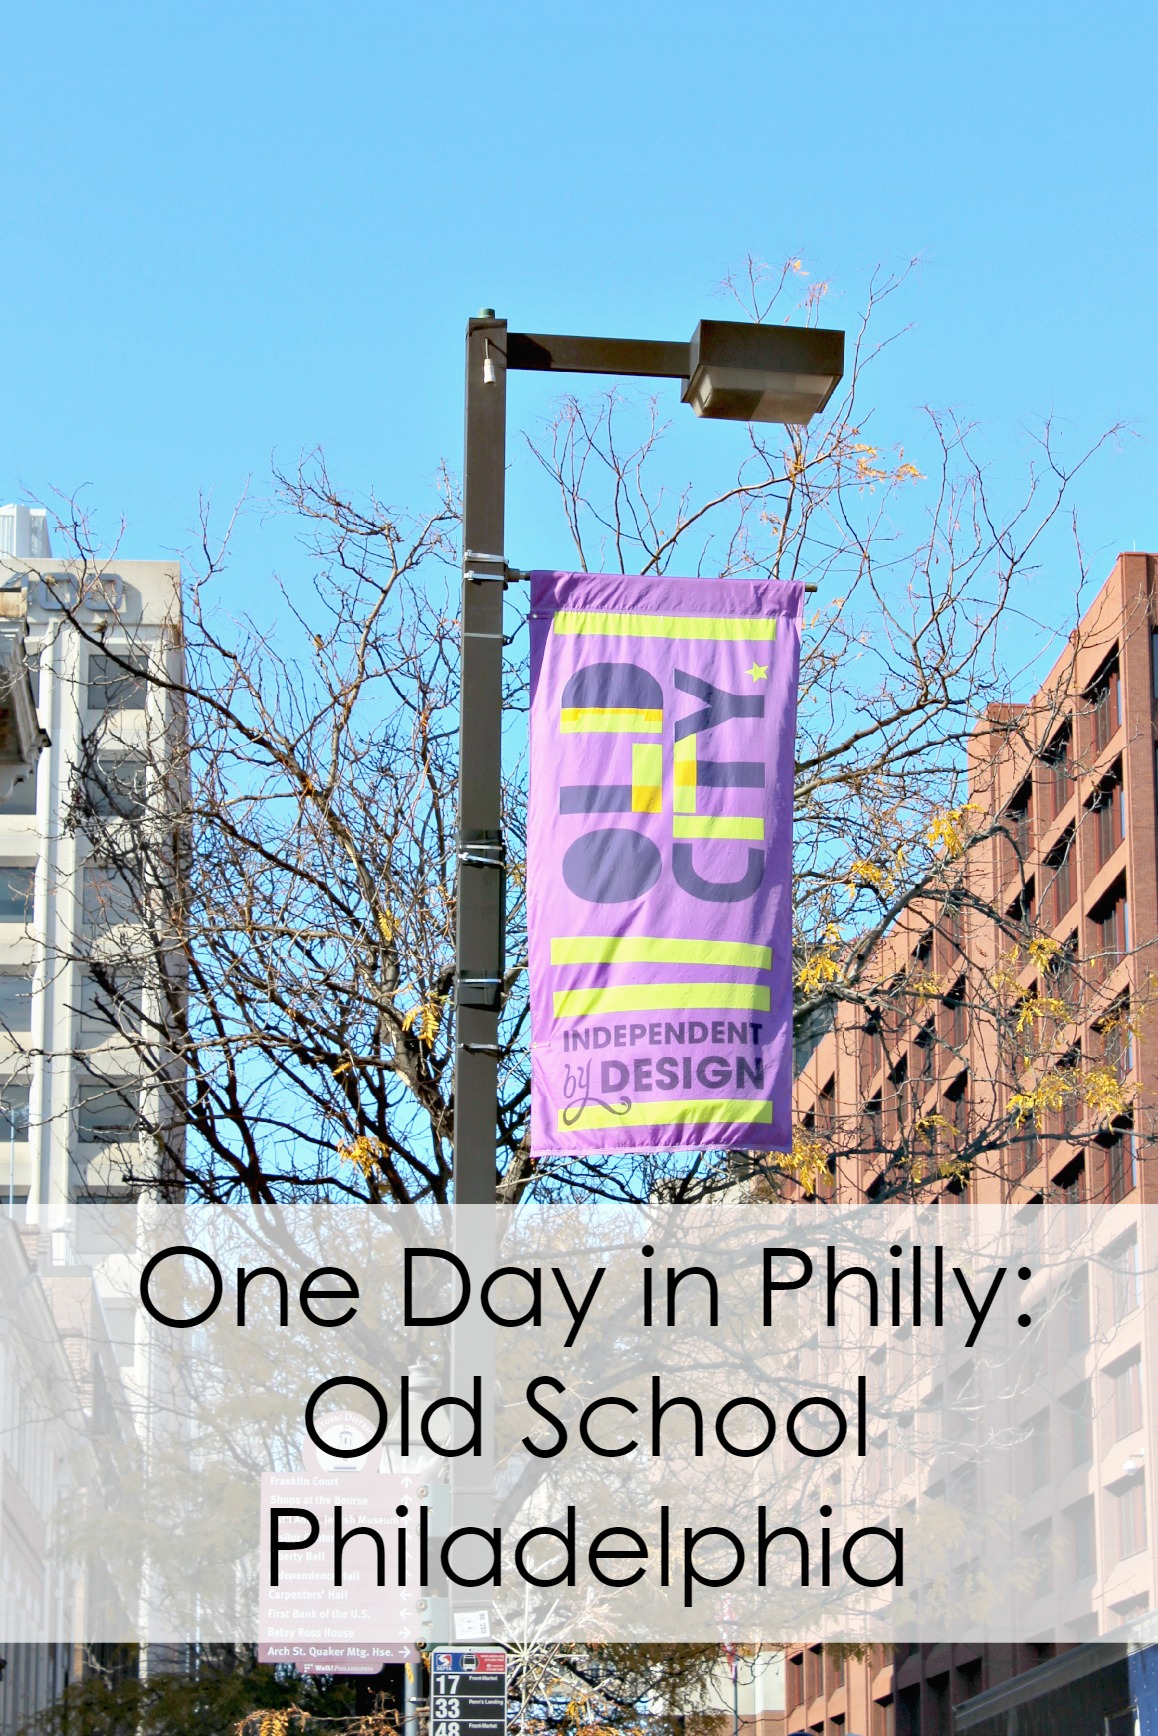 One Day in Philly: Old School